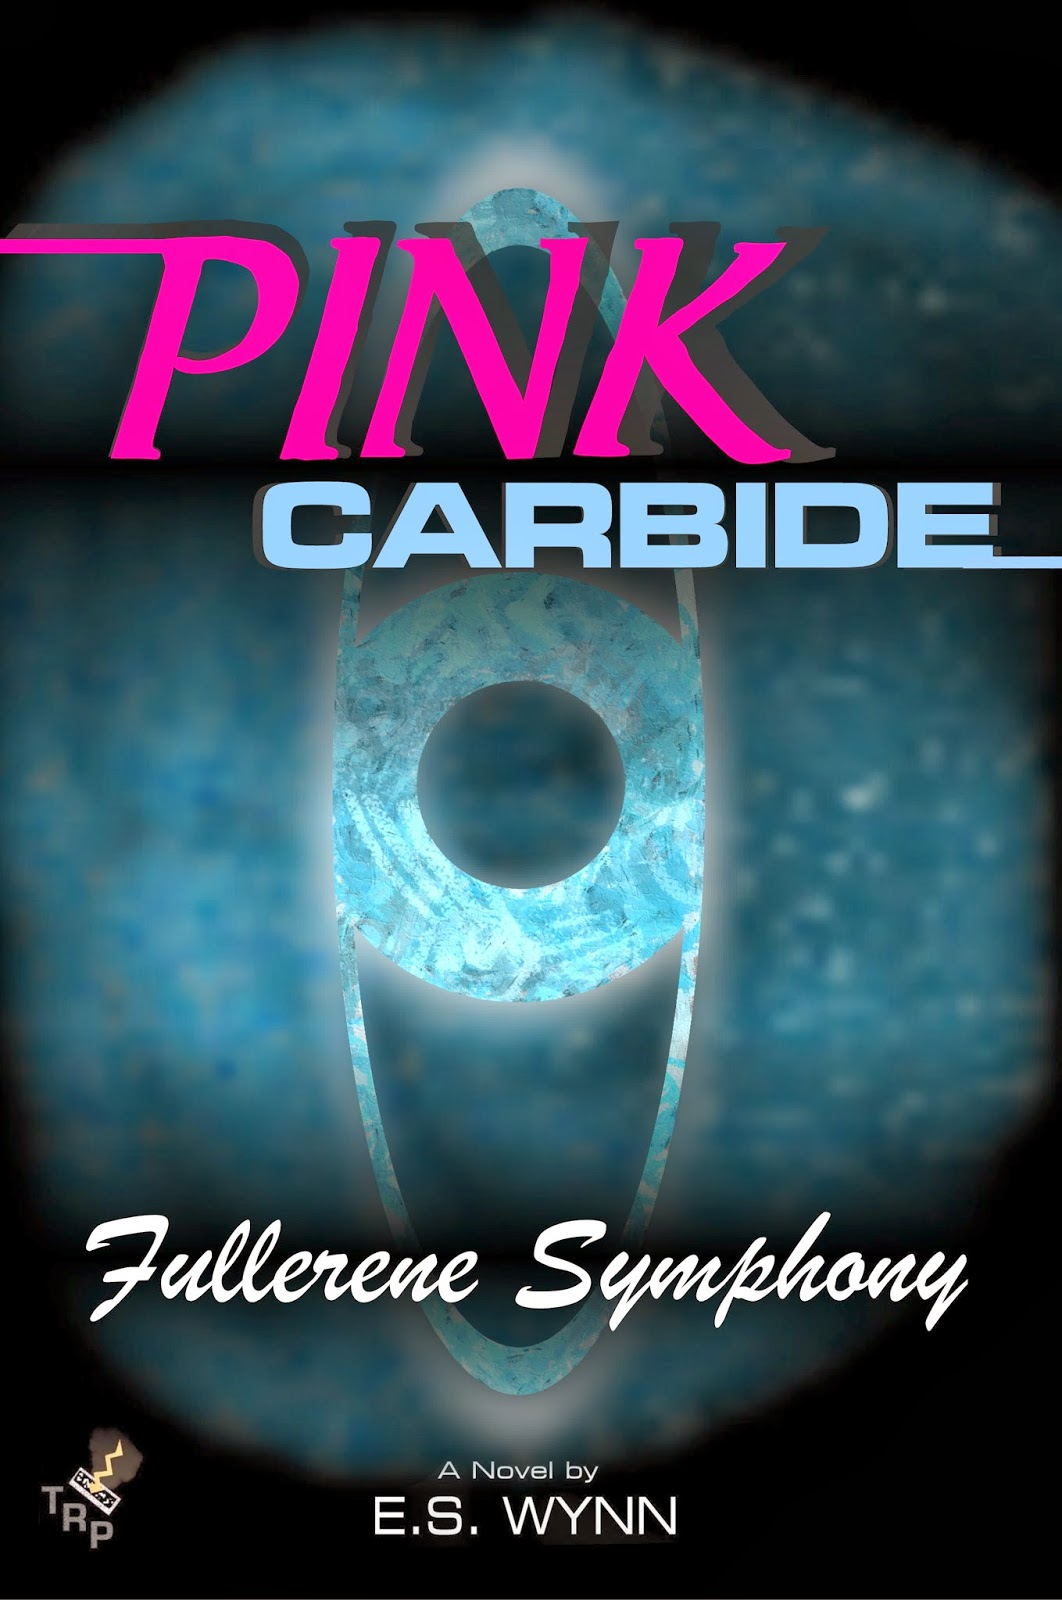 Sixth book in the Pink Carbide series